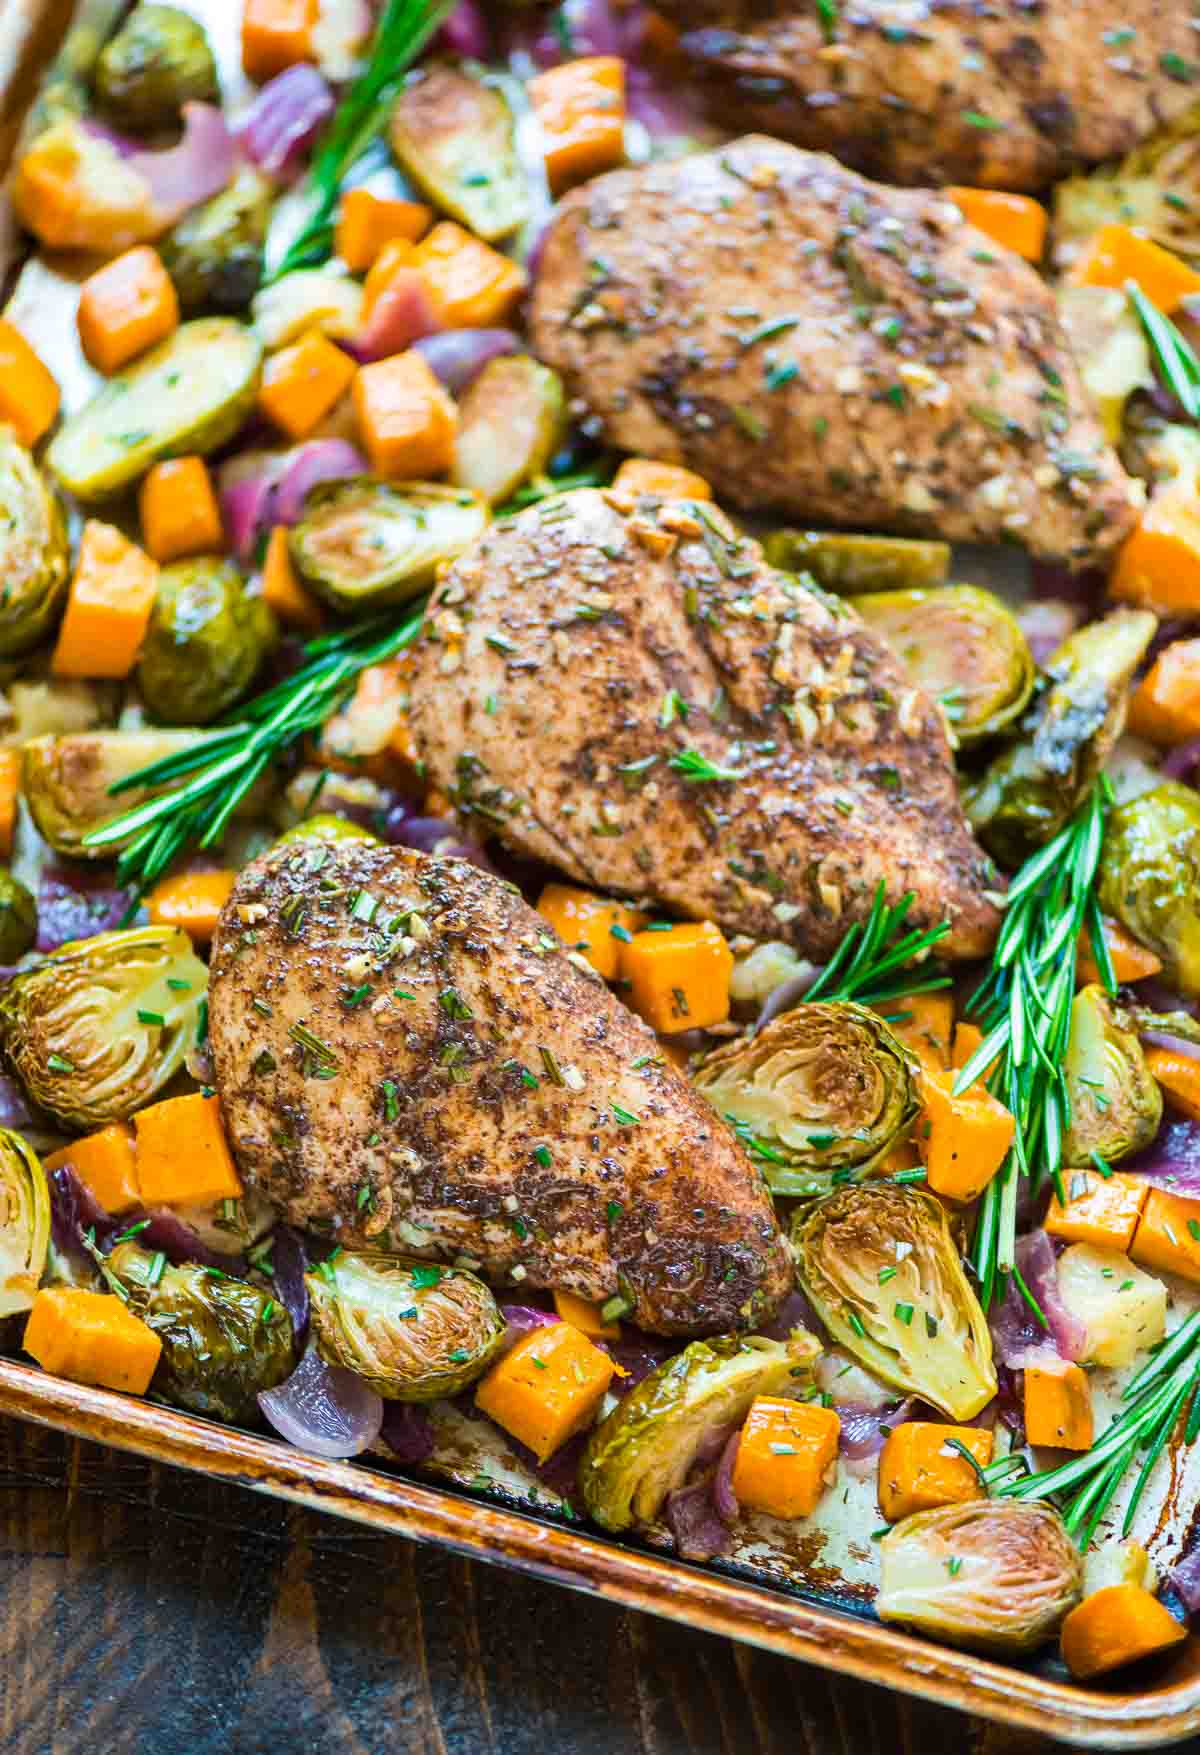 ONE PAN Harvest Sheet Pan Chicken with Sweet Potatoes, Apples, and Brussels Sprouts. Delicious, easy, no clean up! @wellplated